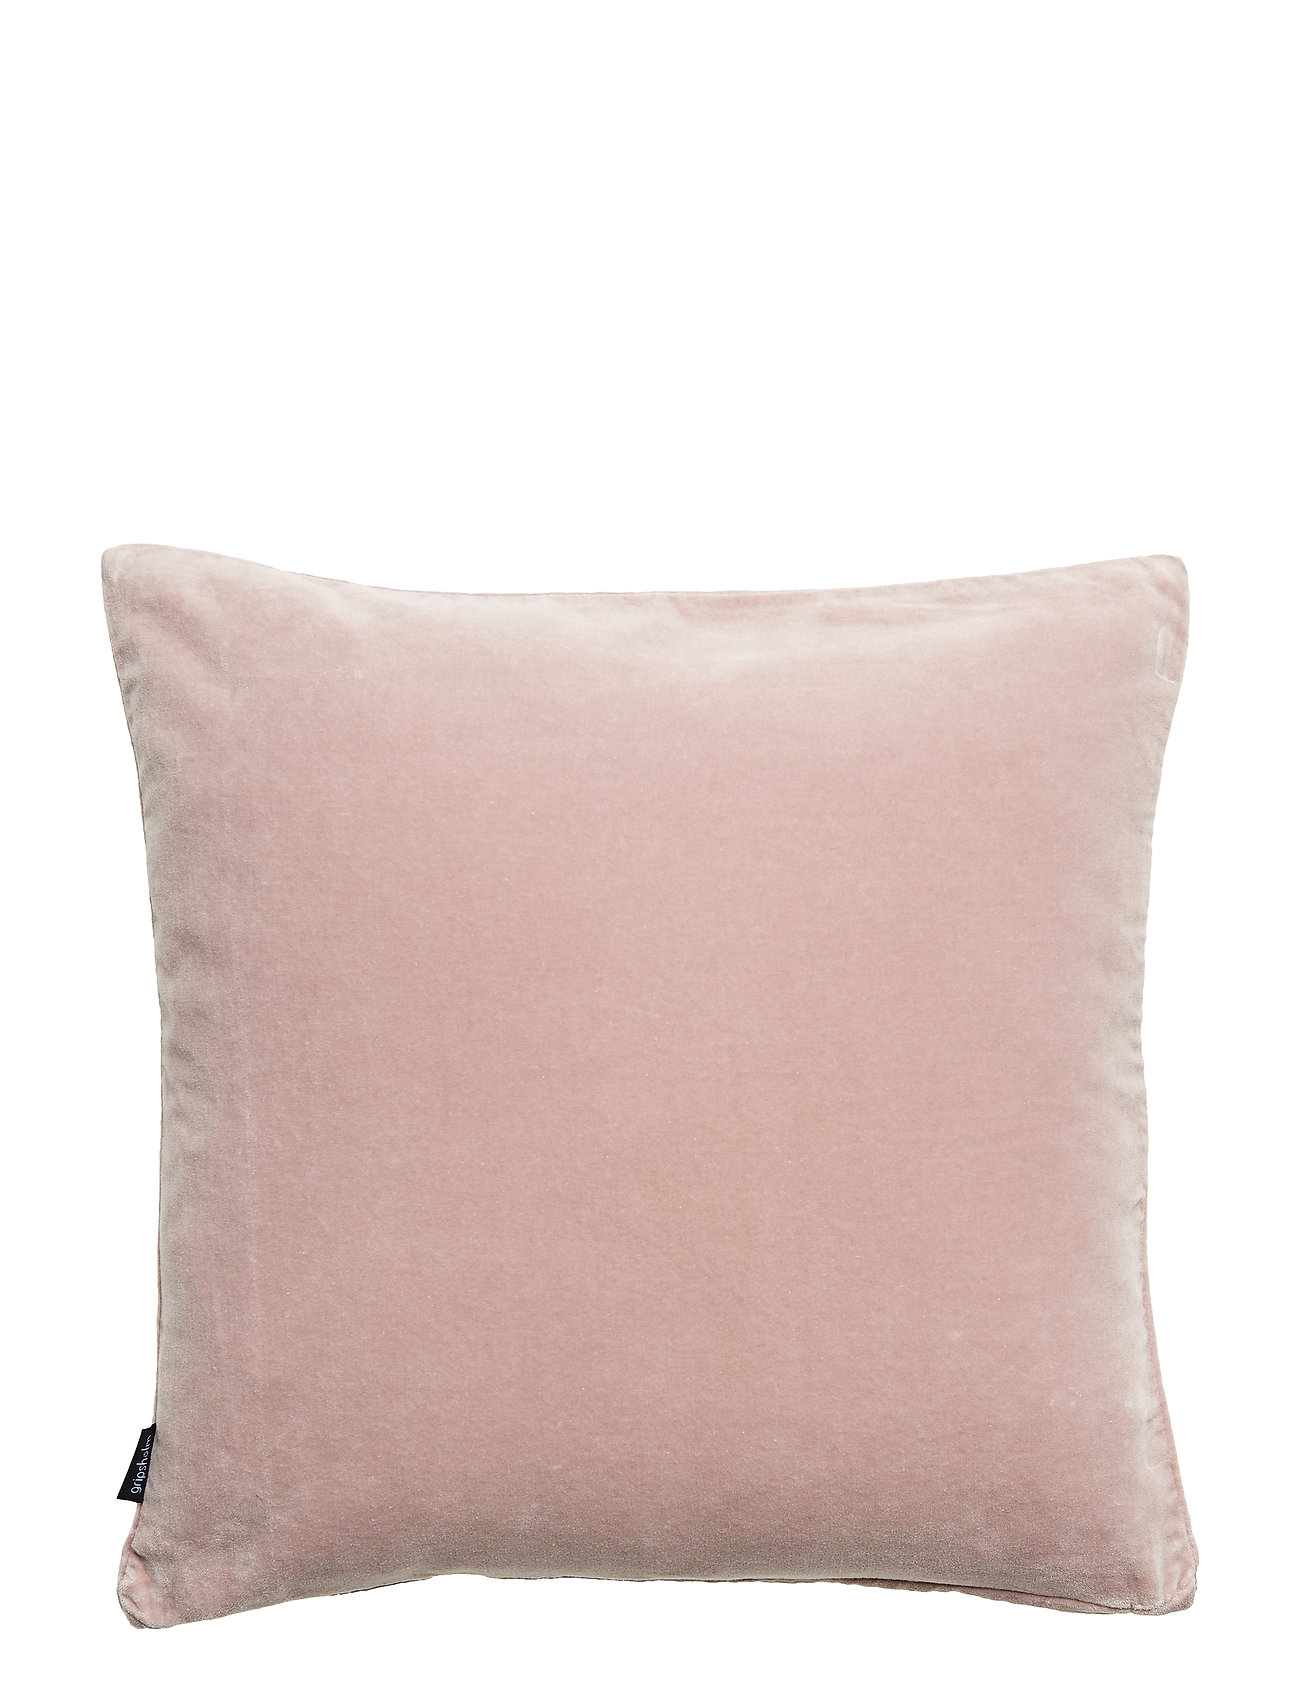 Gripsholm CUSHION COVER AVA GOTS - ROSE